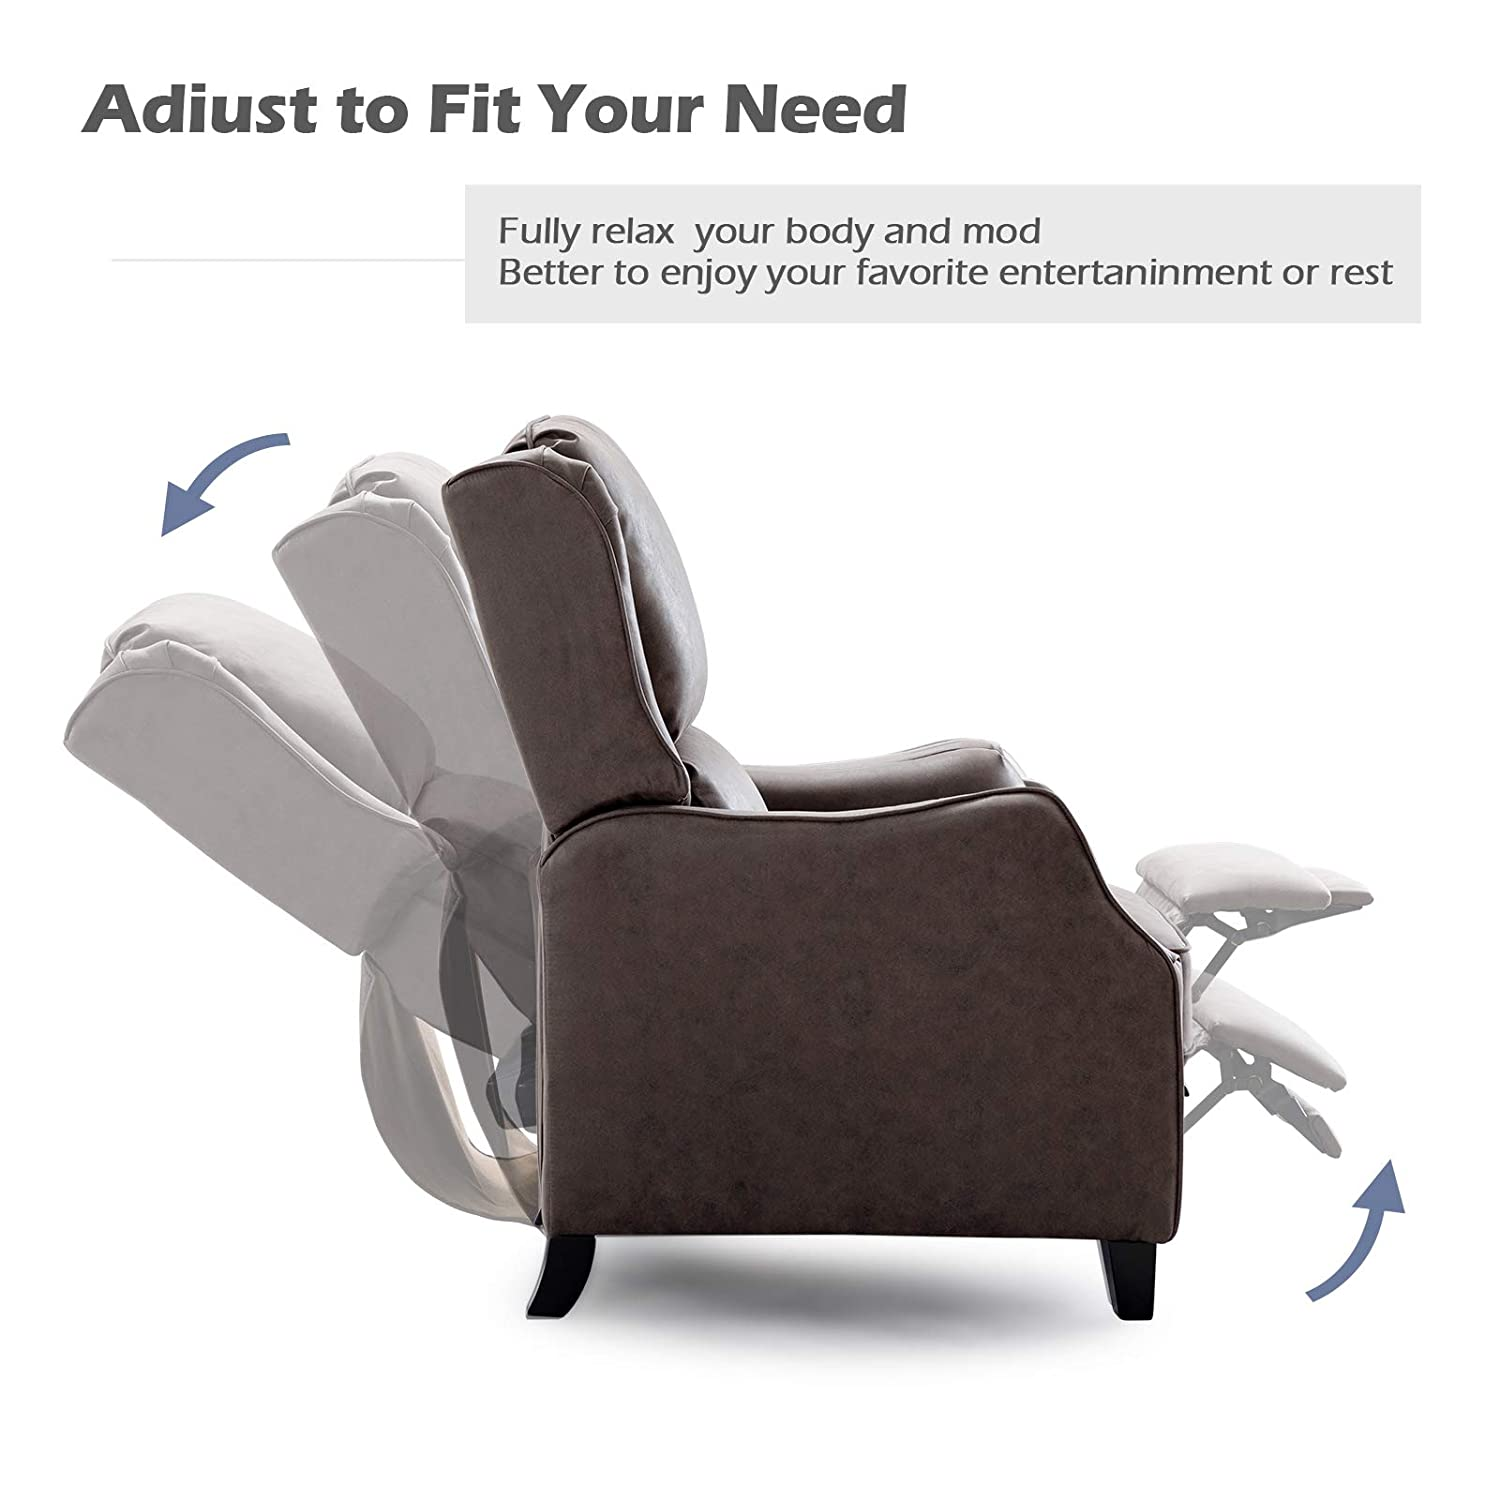 Amazon.com: ANJ Recliner Chair Push Back Recliners with ...